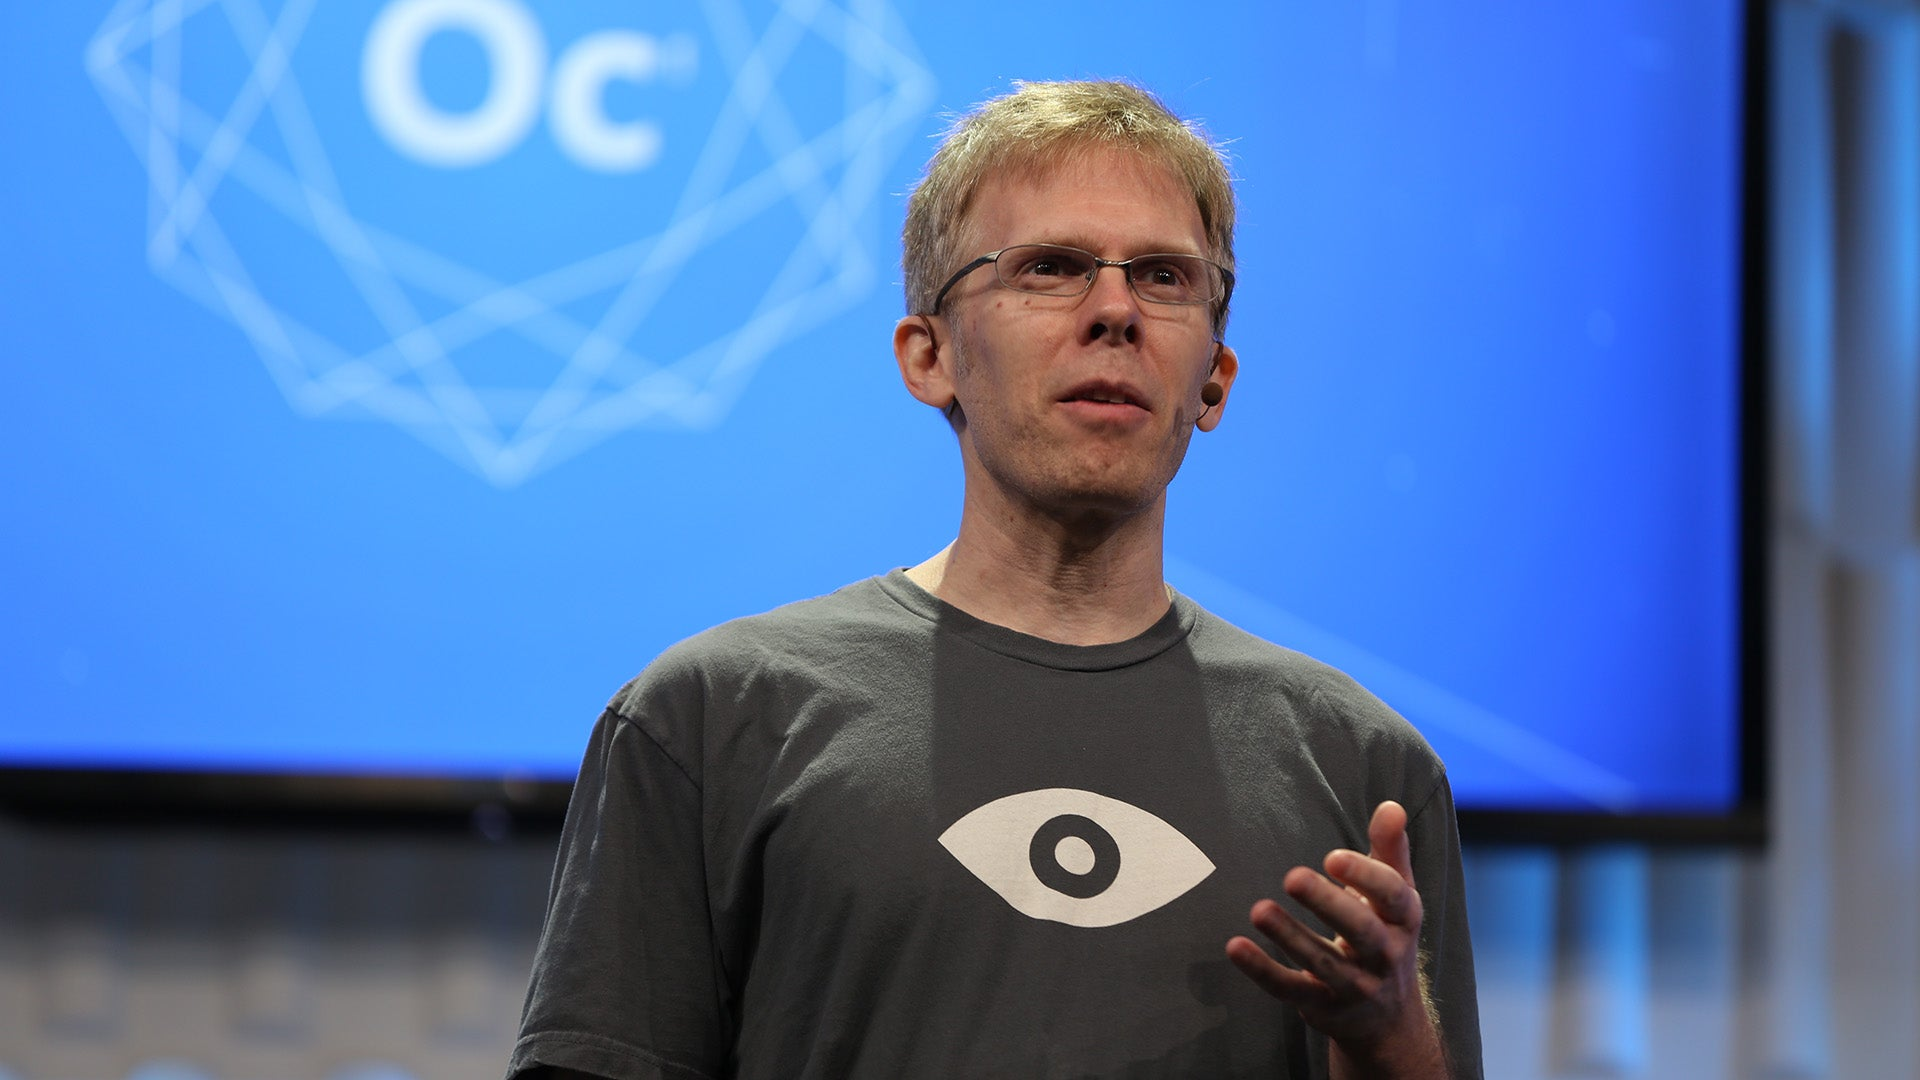 John Carmack Fires Back At Zenimax, Sues For $22 Million